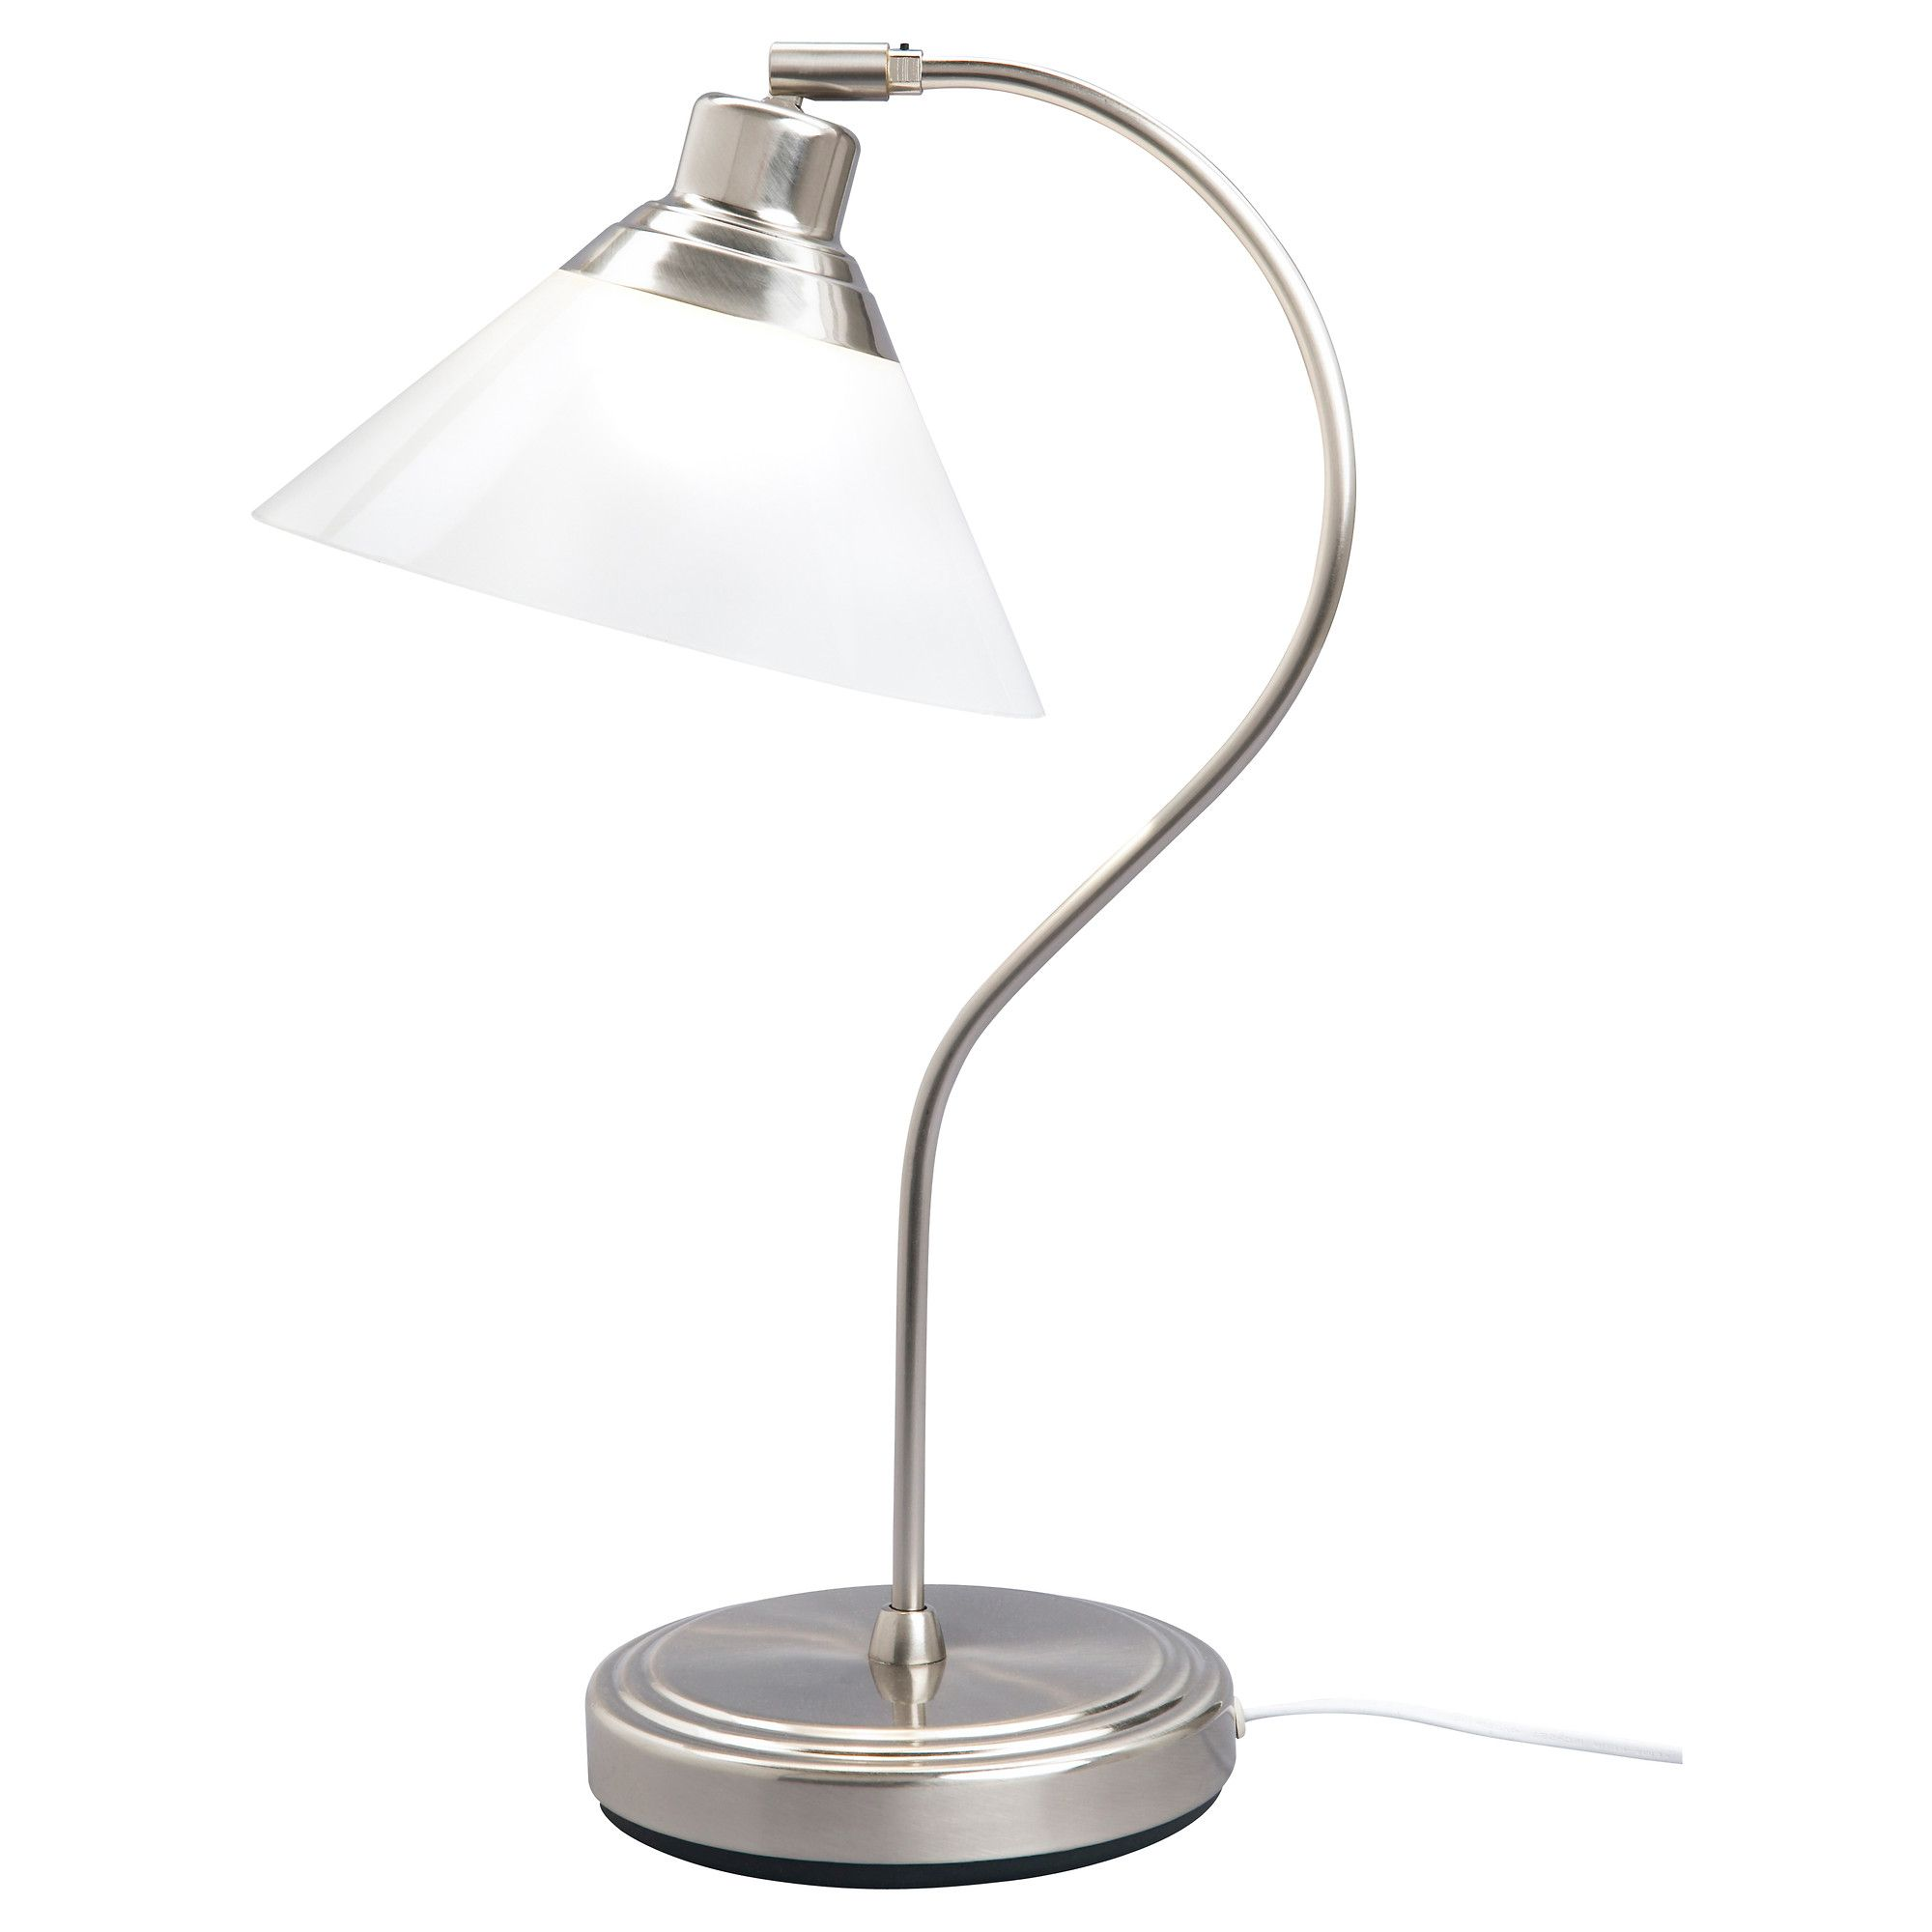 Gros Luminaire Suspendu Kroby Lampe De Table Nickel Verre With Luminaire Suspendu Ikea